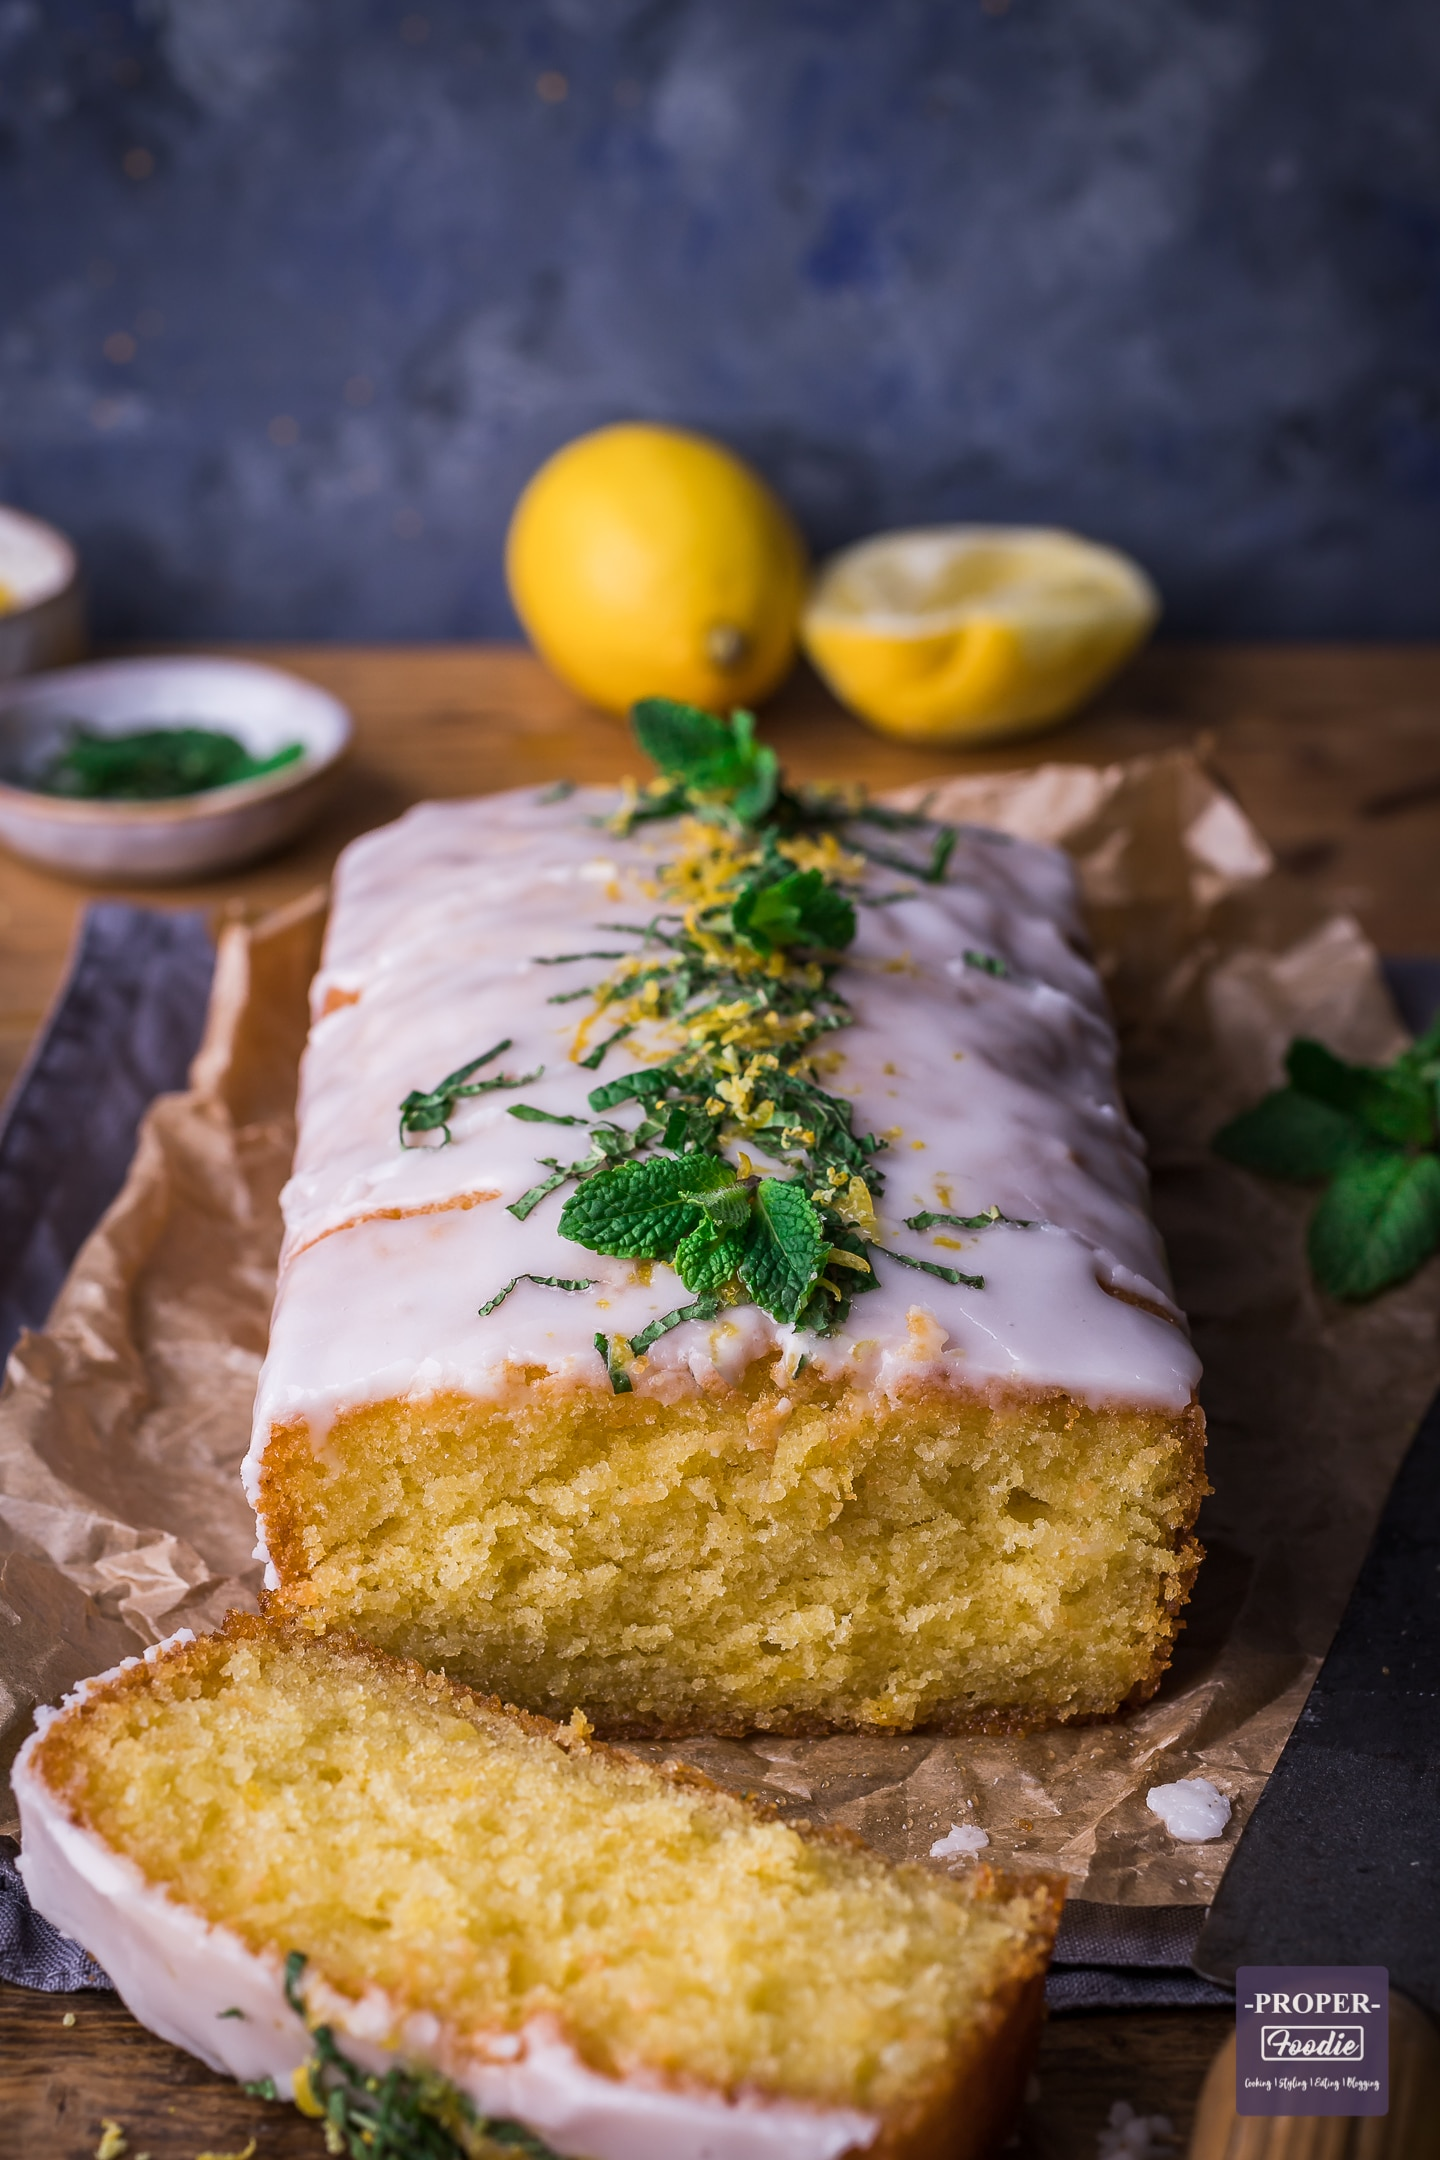 lemon drizzle cake with one piece sliced off at the front and lemons and fresh mint in the background